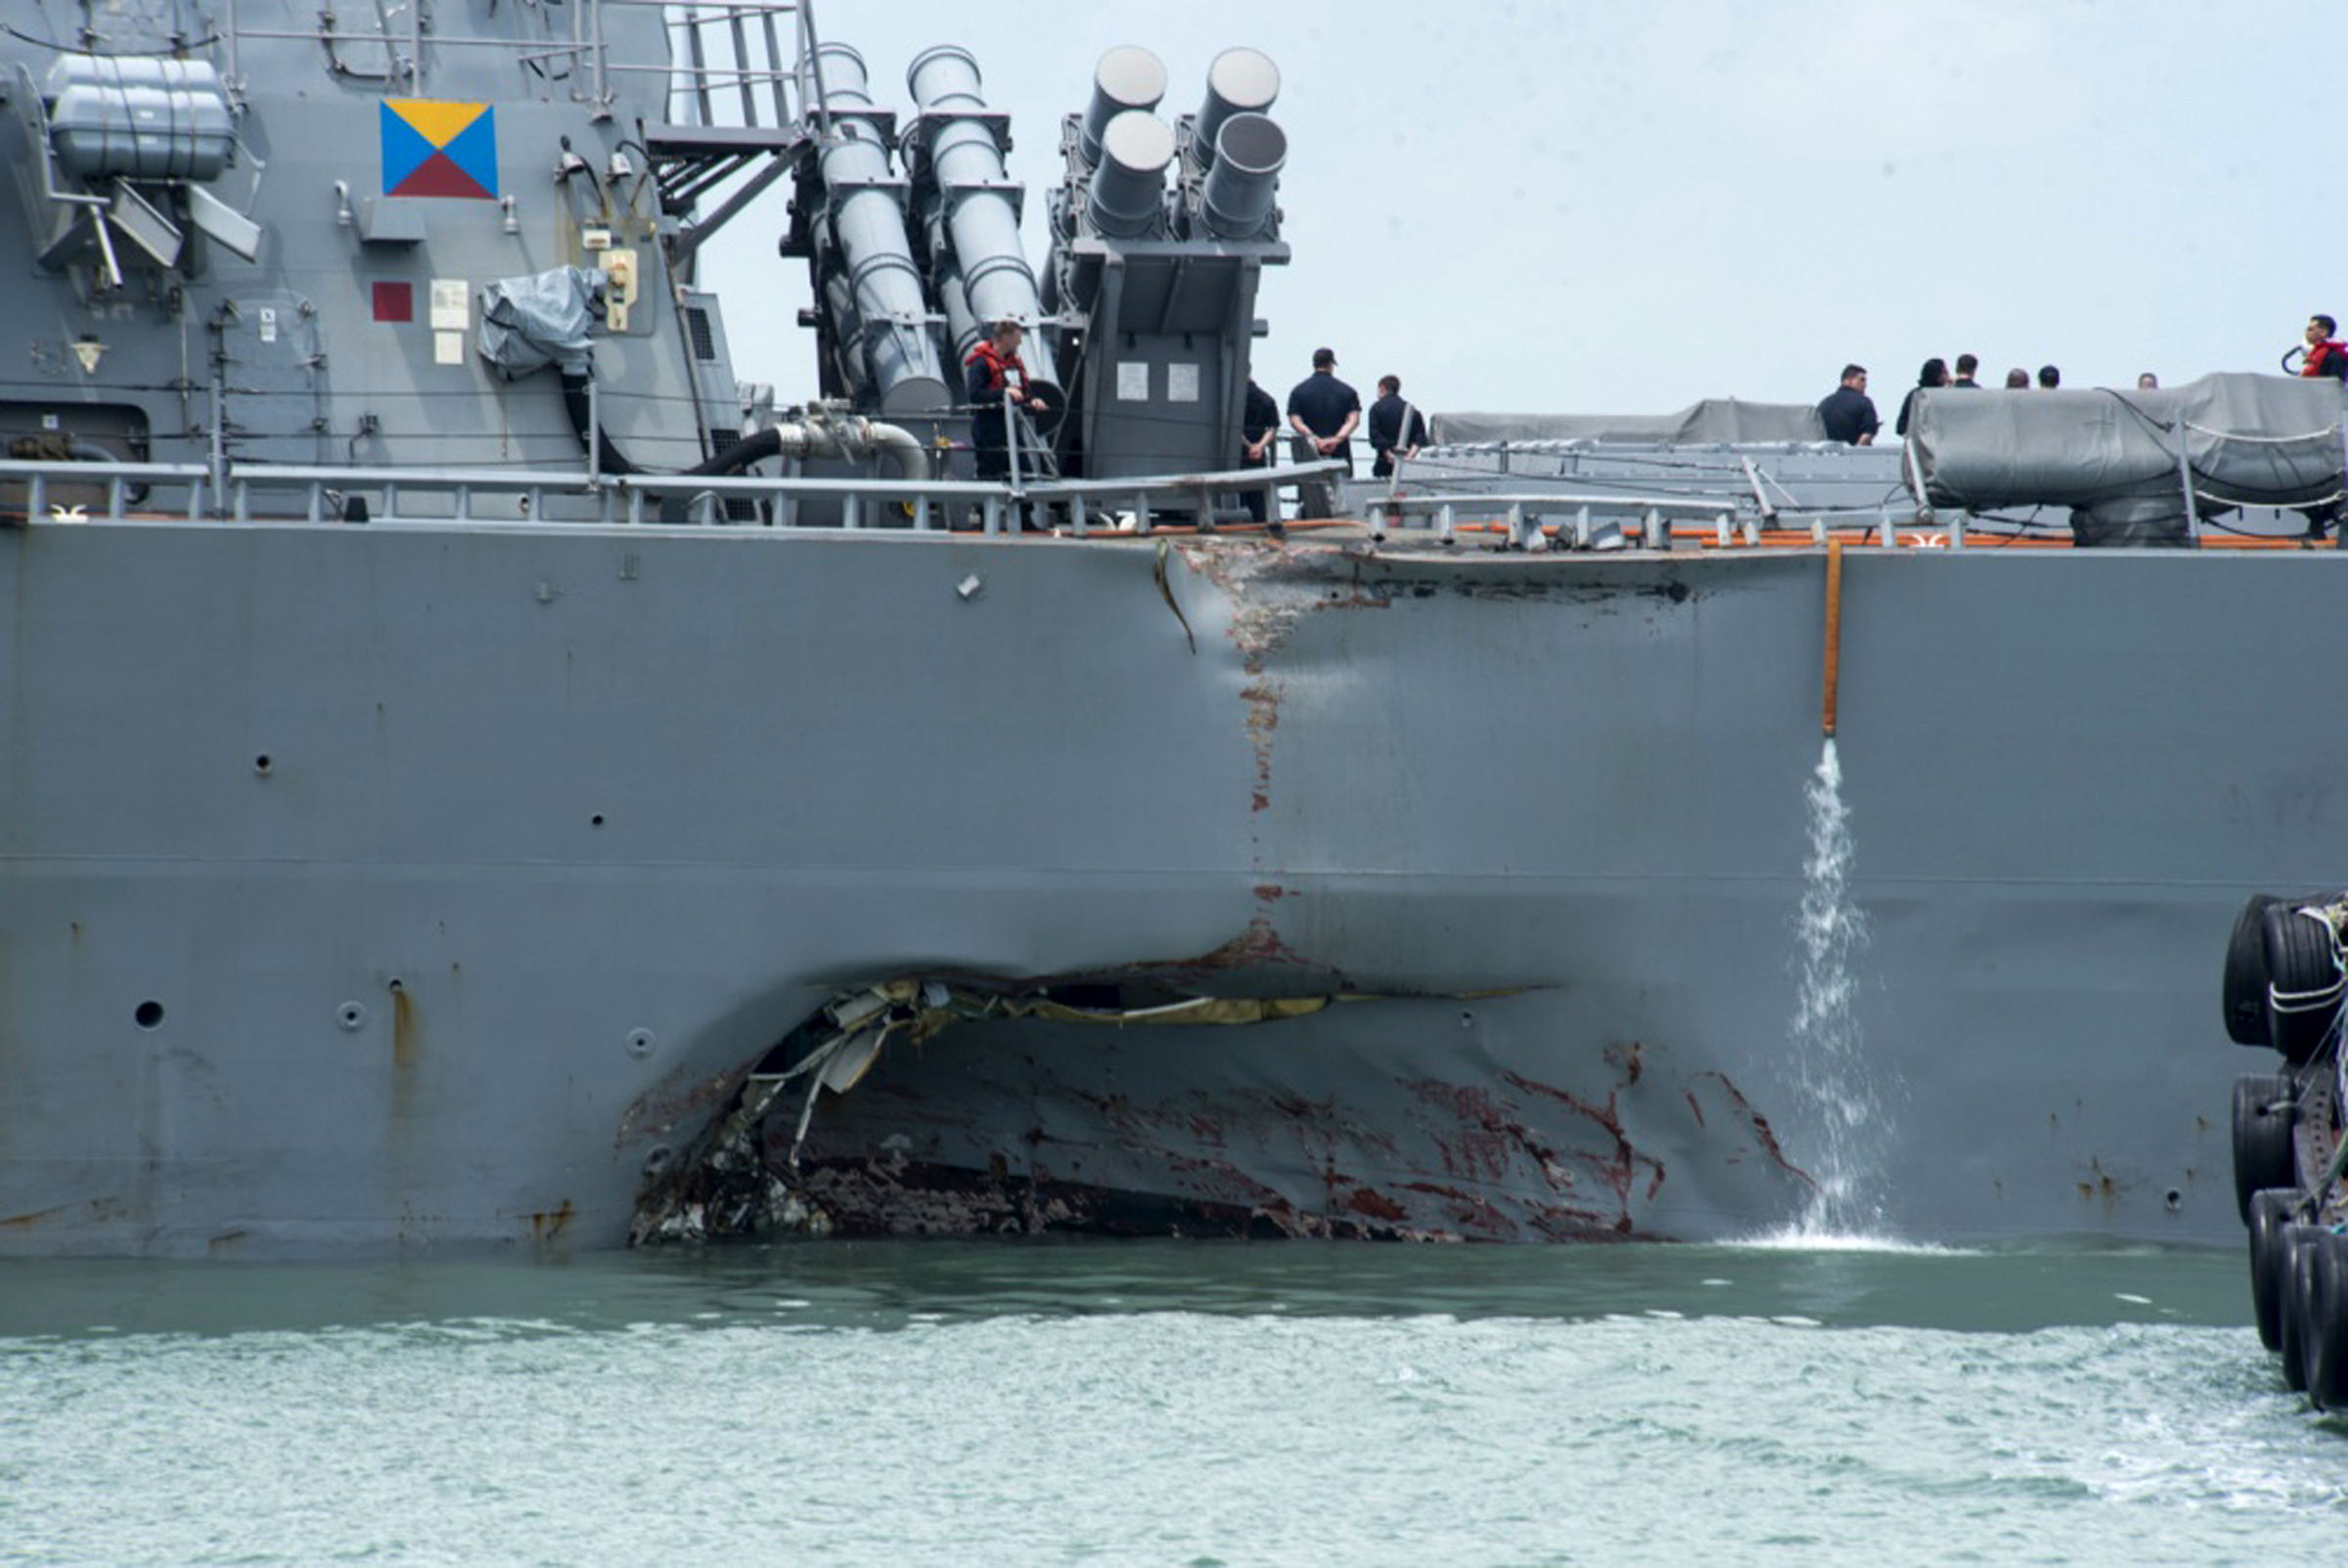 """APTOPIX Singapore US Navy Ship Collision-2 Damage to the portside is visible as the Guided-missile destroyer USS John S. McCain (DDG 56) steers towards Changi naval base in Singapore following a collision with the merchant vessel Alnic MC Monday, Aug. 21, 2017. The USS John S. McCain was docked at Singapore's naval base with """"significant damage"""" to its hull after an early morning collision with the Alnic MC as vessels from several nations searched Monday for missing U.S. sailors. (Mass Communication Specialist 2nd Class Joshua Fulton/U.S. Navy photo via AP)"""